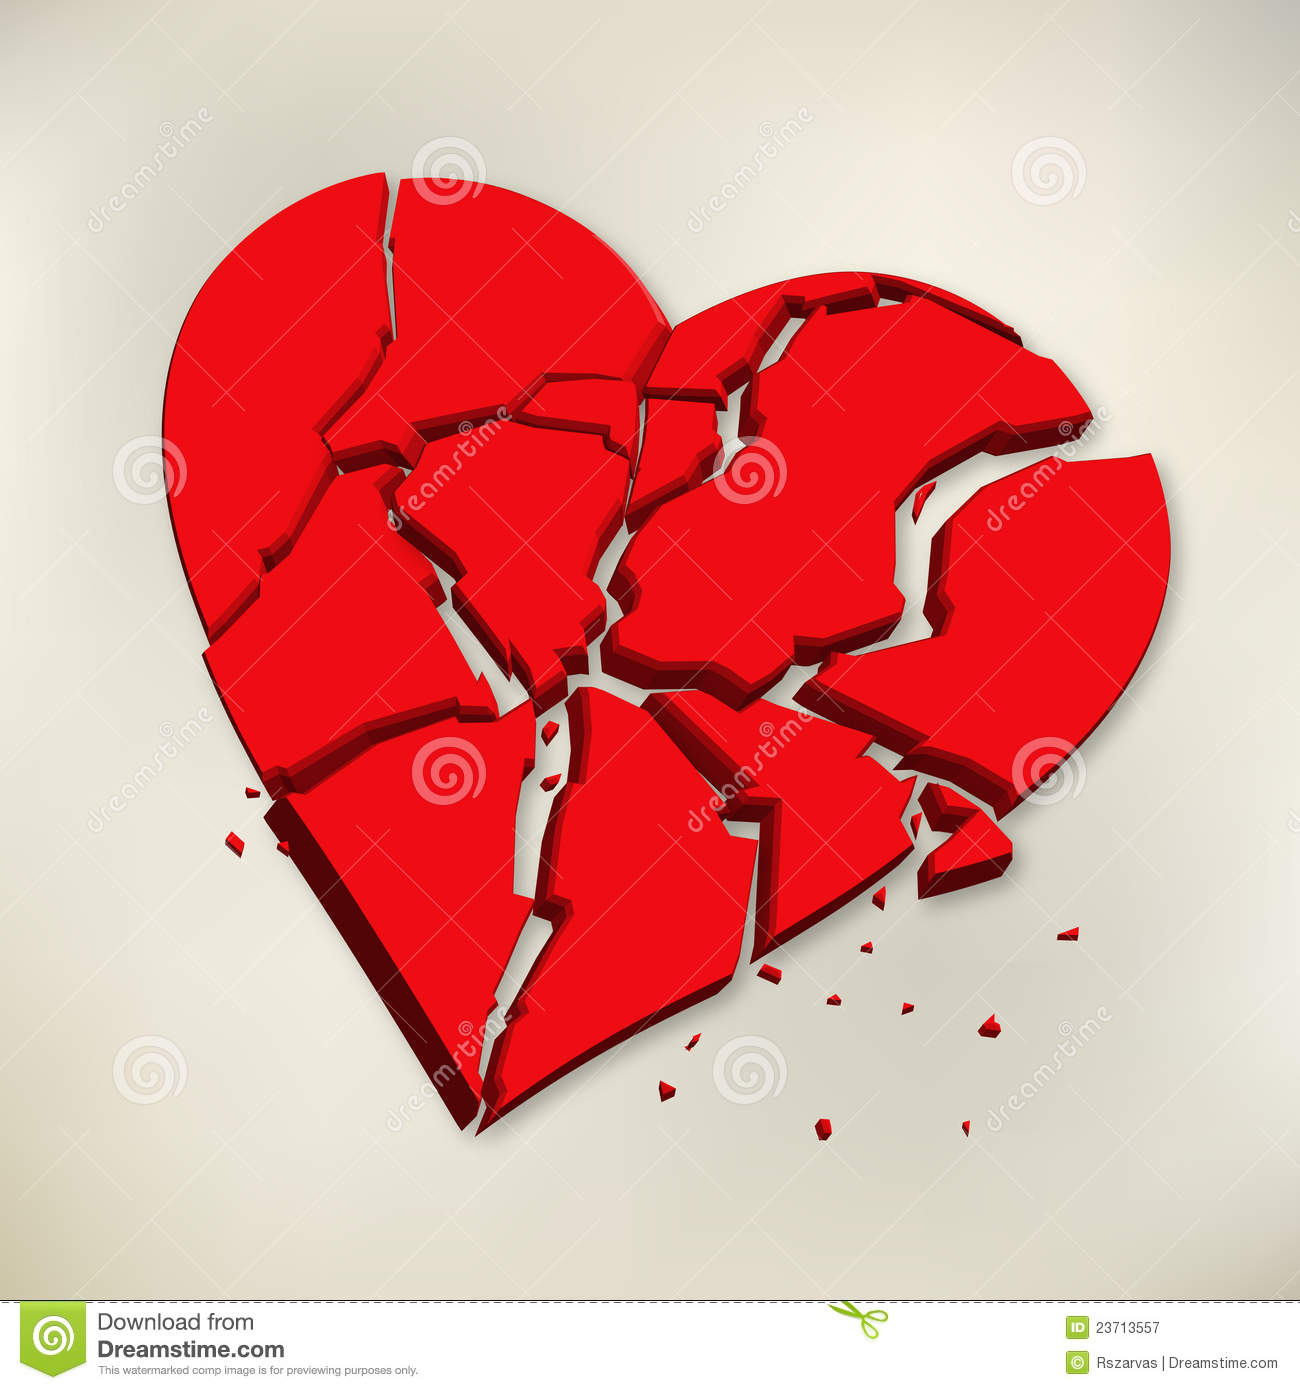 the broken heart essay imagery The broken heart by john donne and varied imagery the broken heart, by john donne, sets a despairing mood about heartbreak and clearly states his adverse opinion about falling in love.